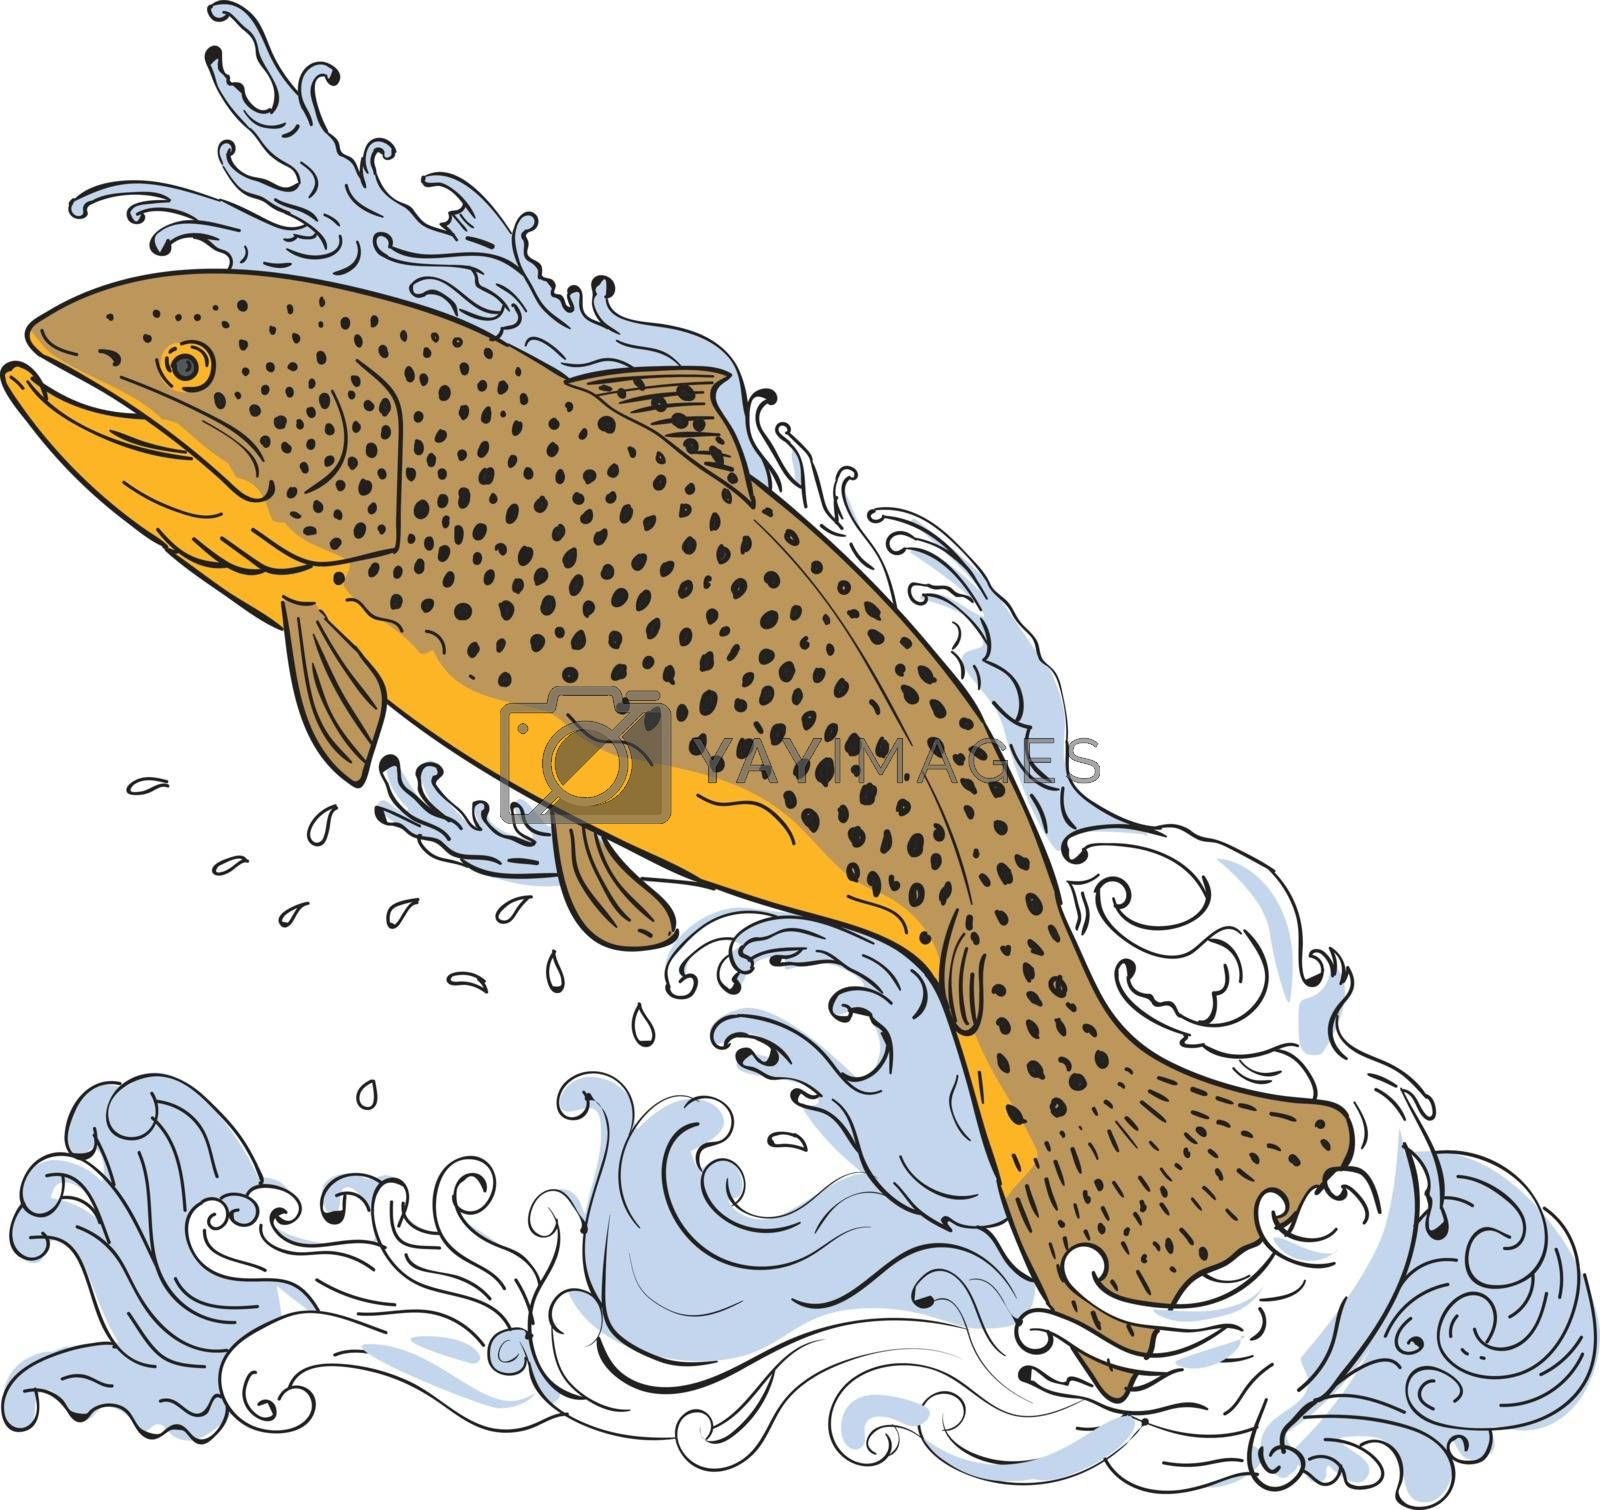 Drawing sketch style illustration of a brown trout fish swimming up on a turbulent water viewed from the side set on isolated white background.